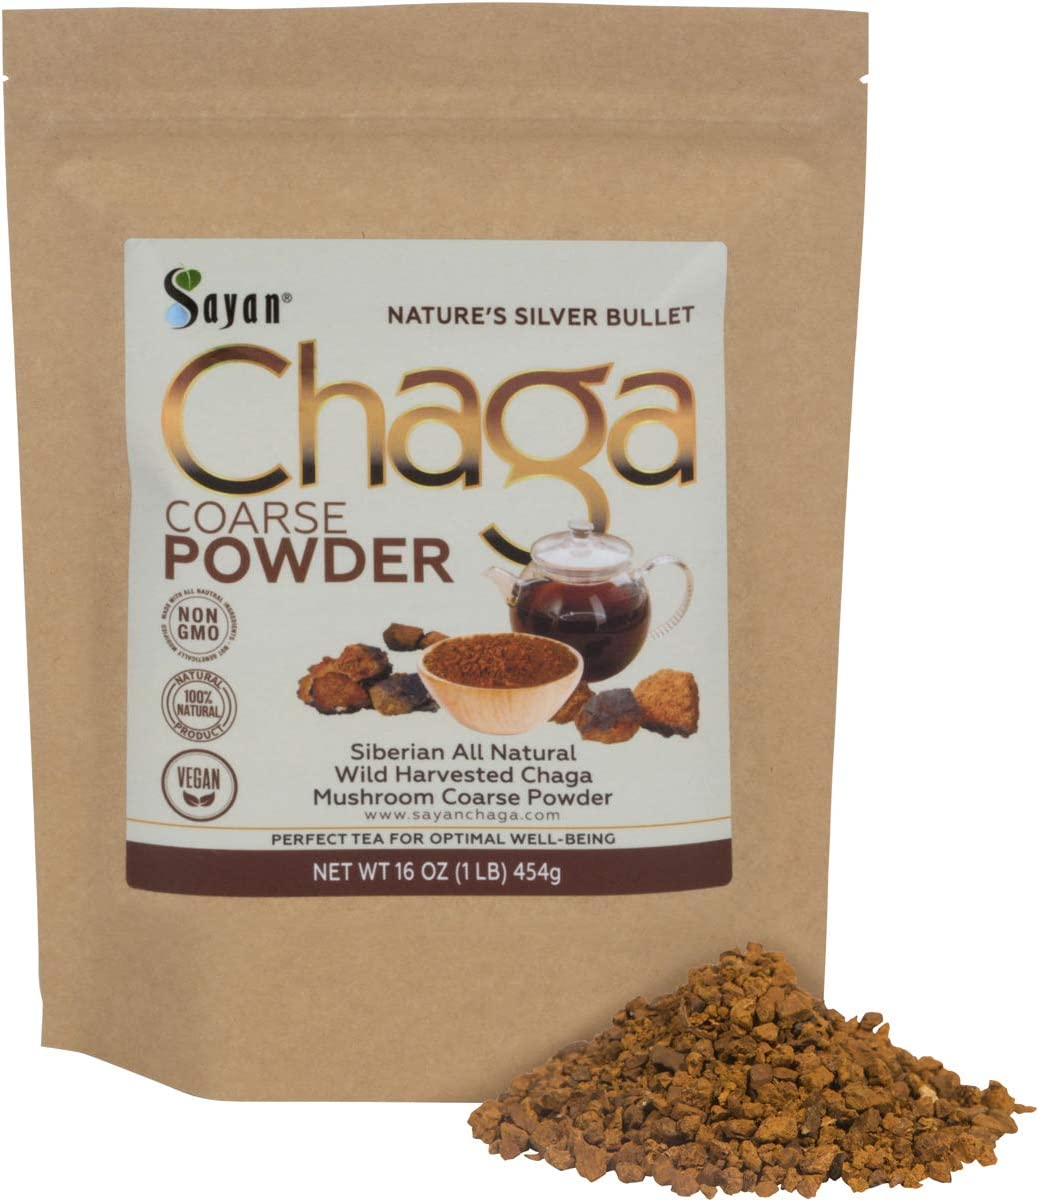 Sayan Siberian Raw Ground Chaga Powder 1 Lbs 454g